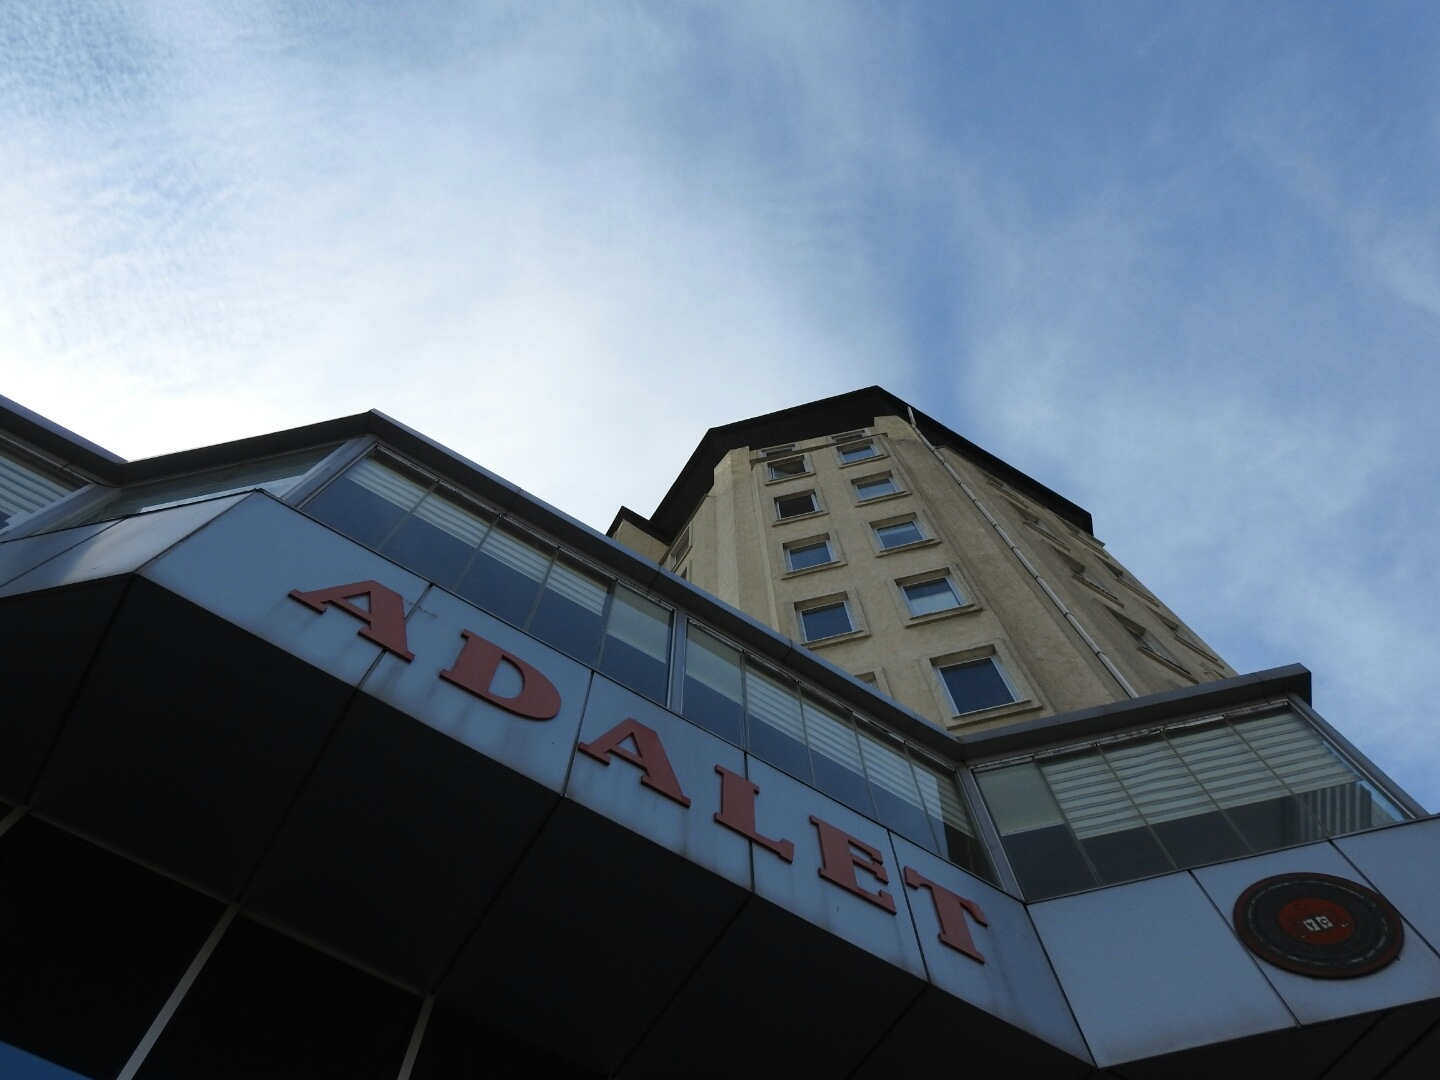 ADALET building by Ahmad Alsayed